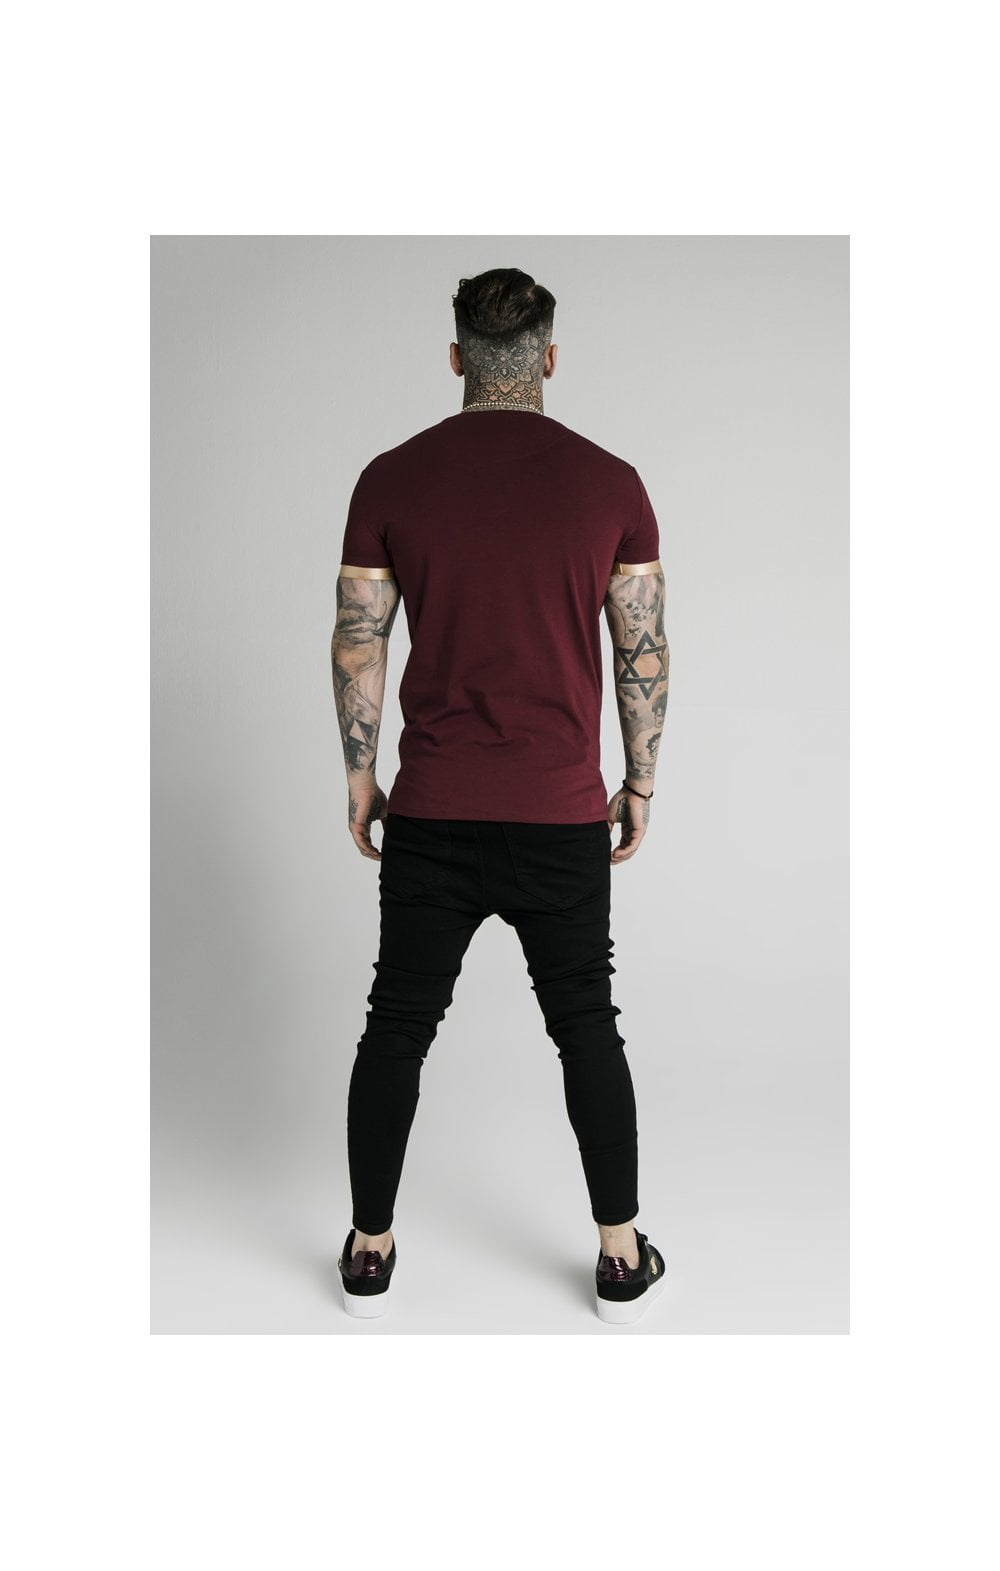 Load image into Gallery viewer, SikSilk S/S Inset Cuff Gym Tee – Burgundy & Gold (5)